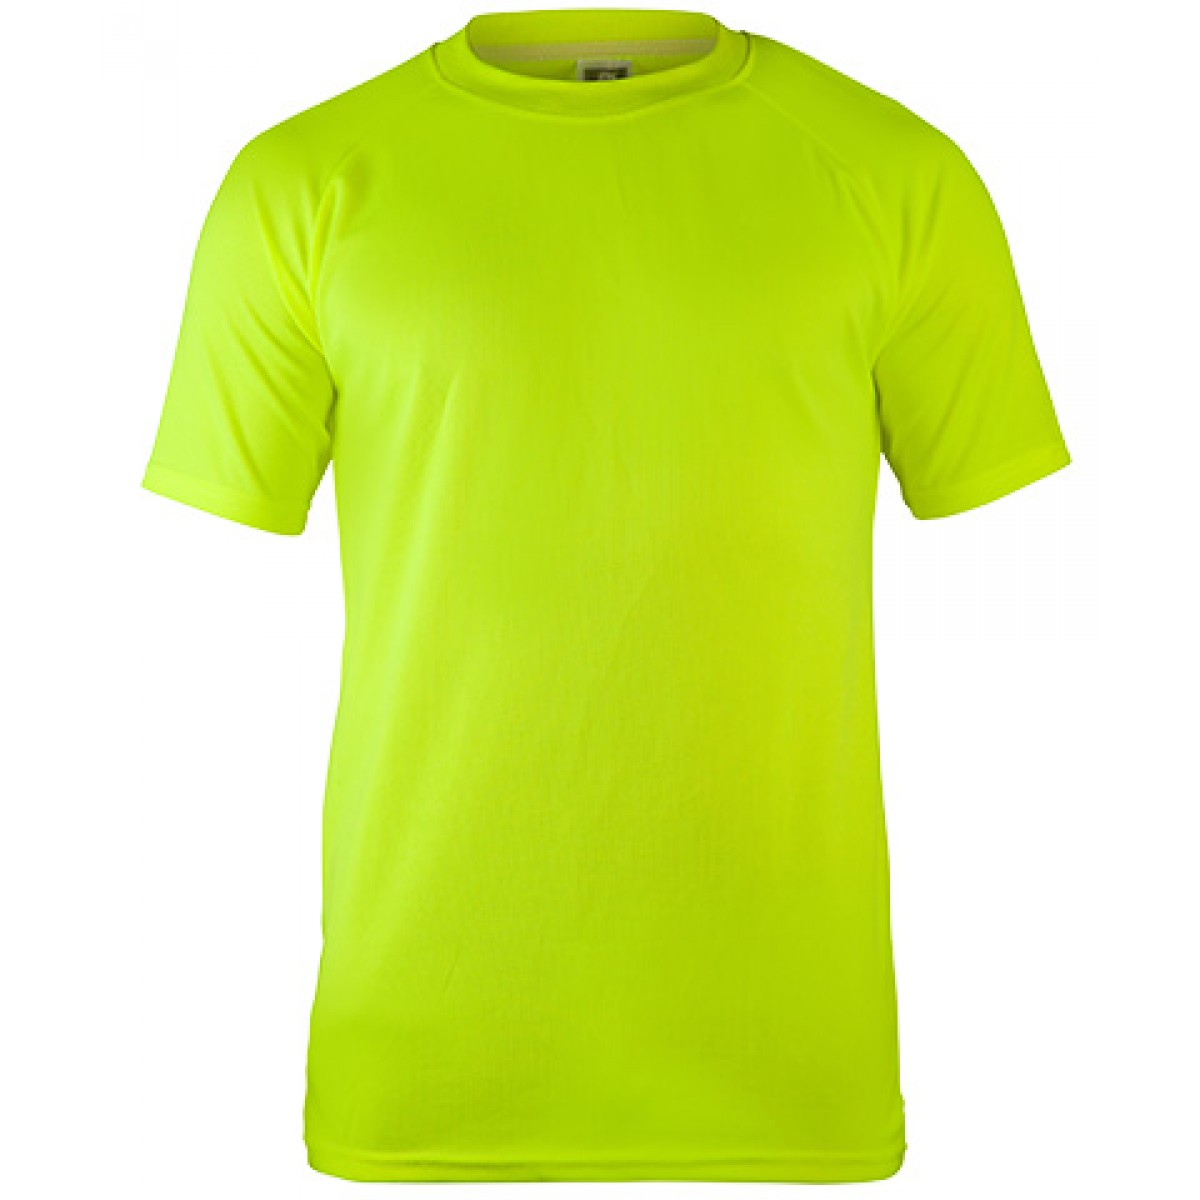 Performance T-shirt-Safety Green-YM